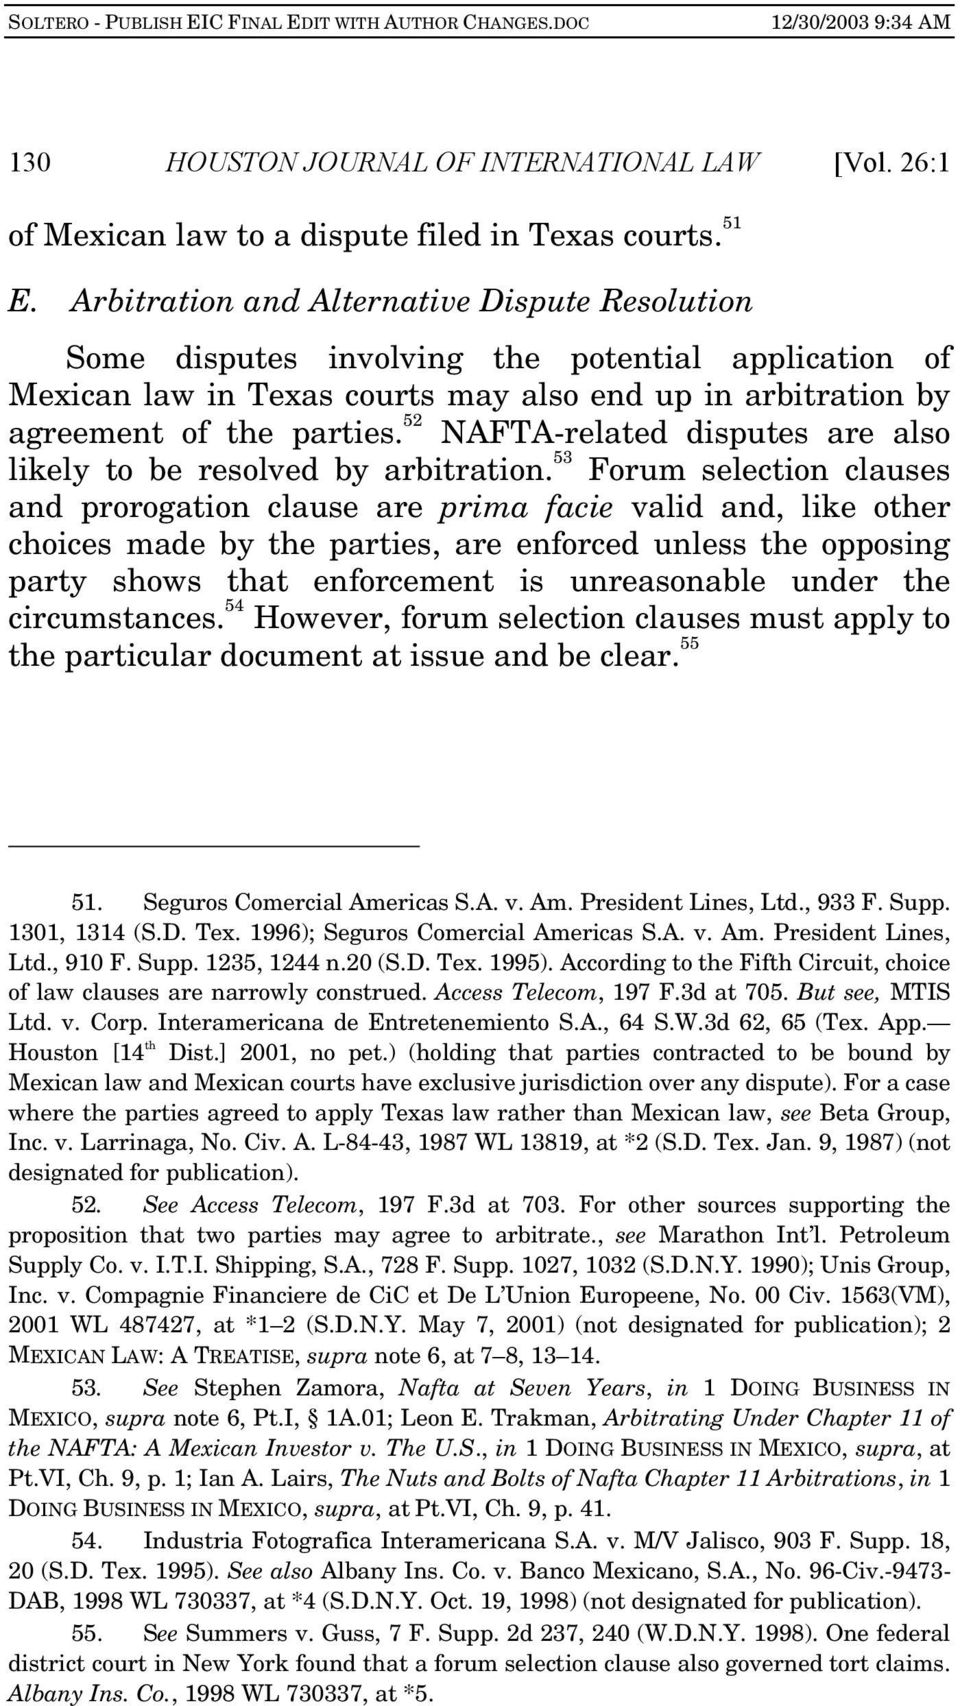 52 NAFTA-related disputes are also likely to be resolved by arbitration.